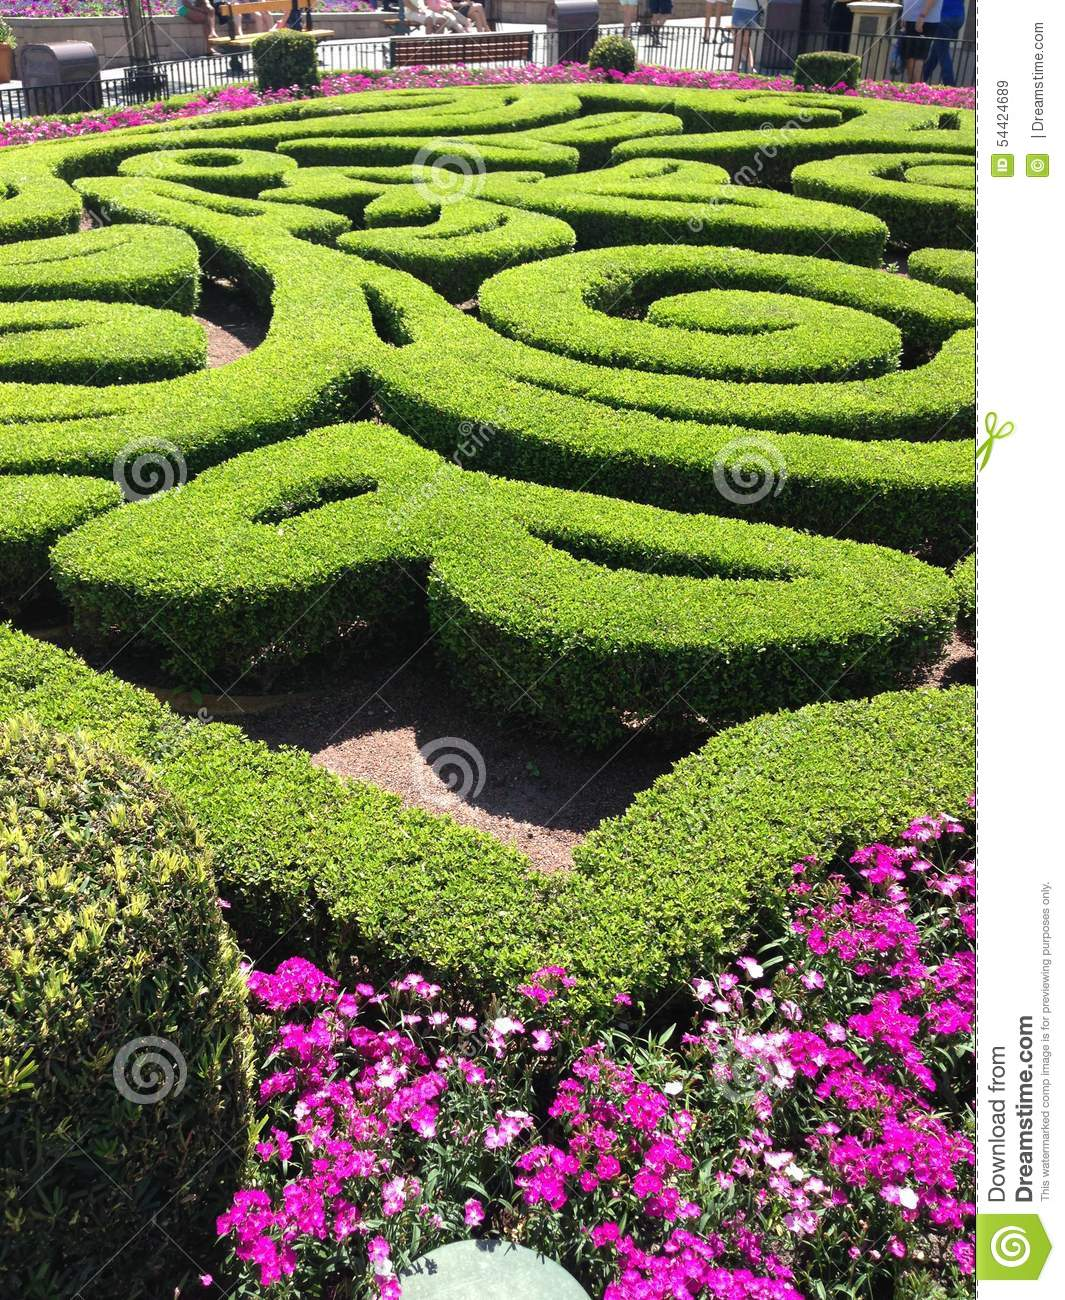 Flower and garden festival stock photo image 54424689 for Garden maze designs